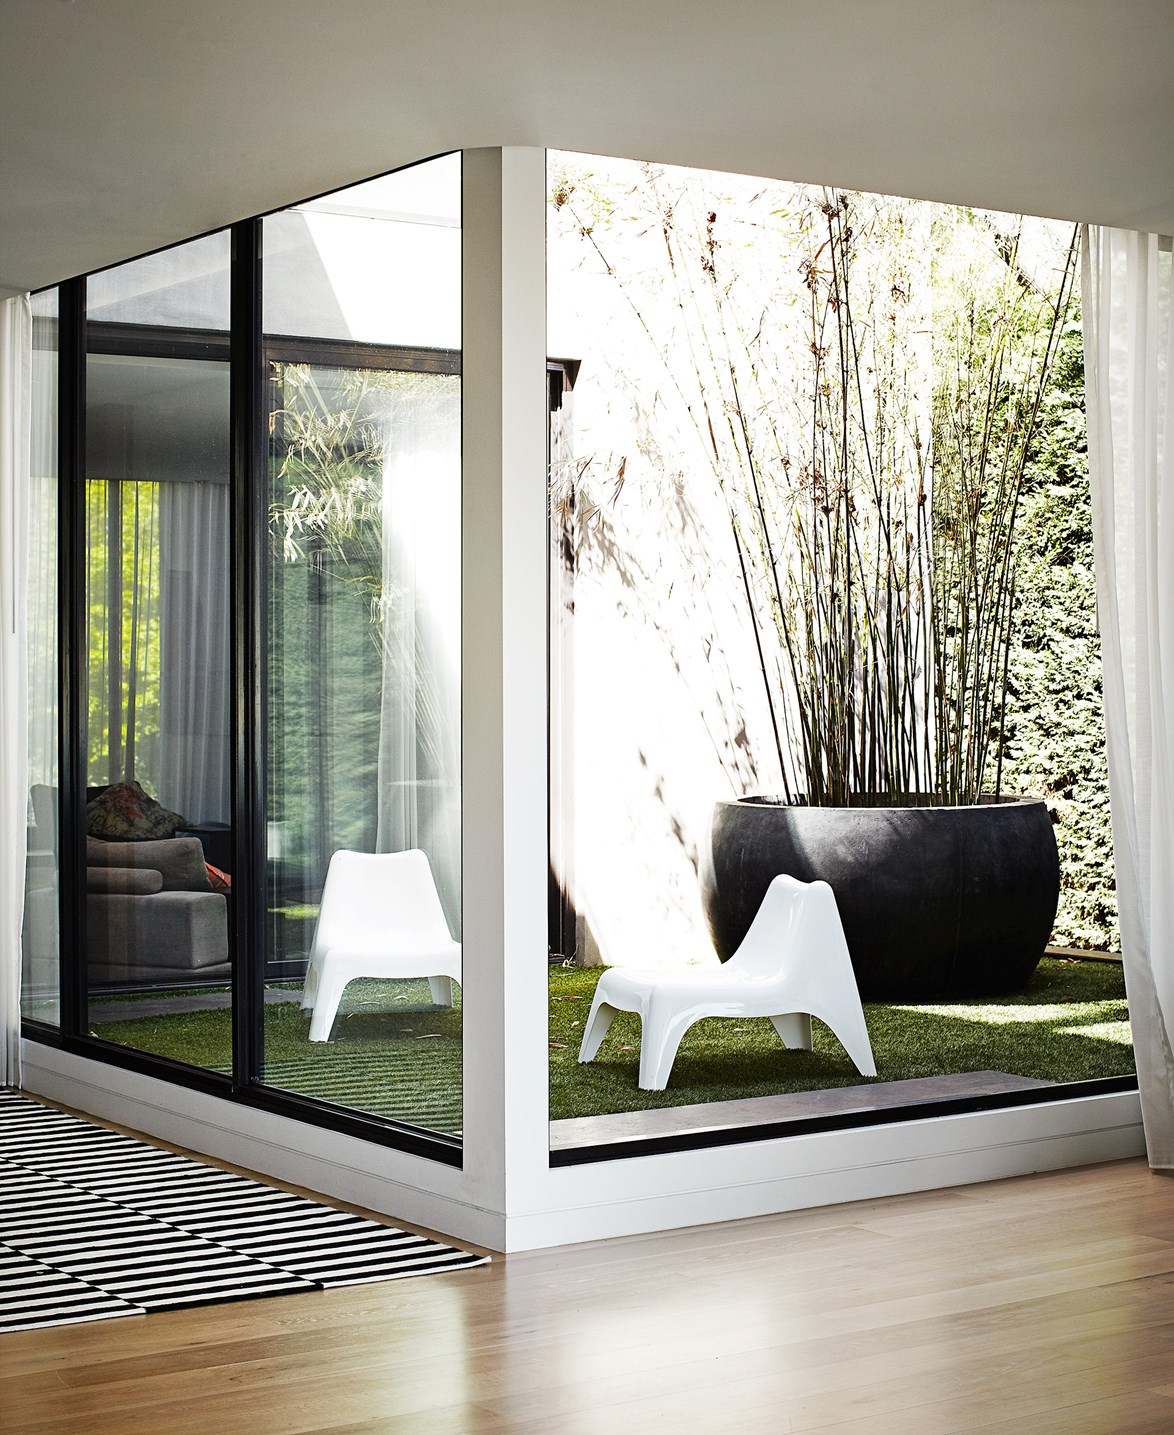 "A pair of white Ikea chairs create a focal point in this internal courtyard – and provide seating for the homeowner Tracy, who often reads out there. ""There is no lawn mowing or gardening in that area except for watering the bamboo,"" Tracy says of her garden area, faking it with artificial grass for the perfect low-maintenance space."